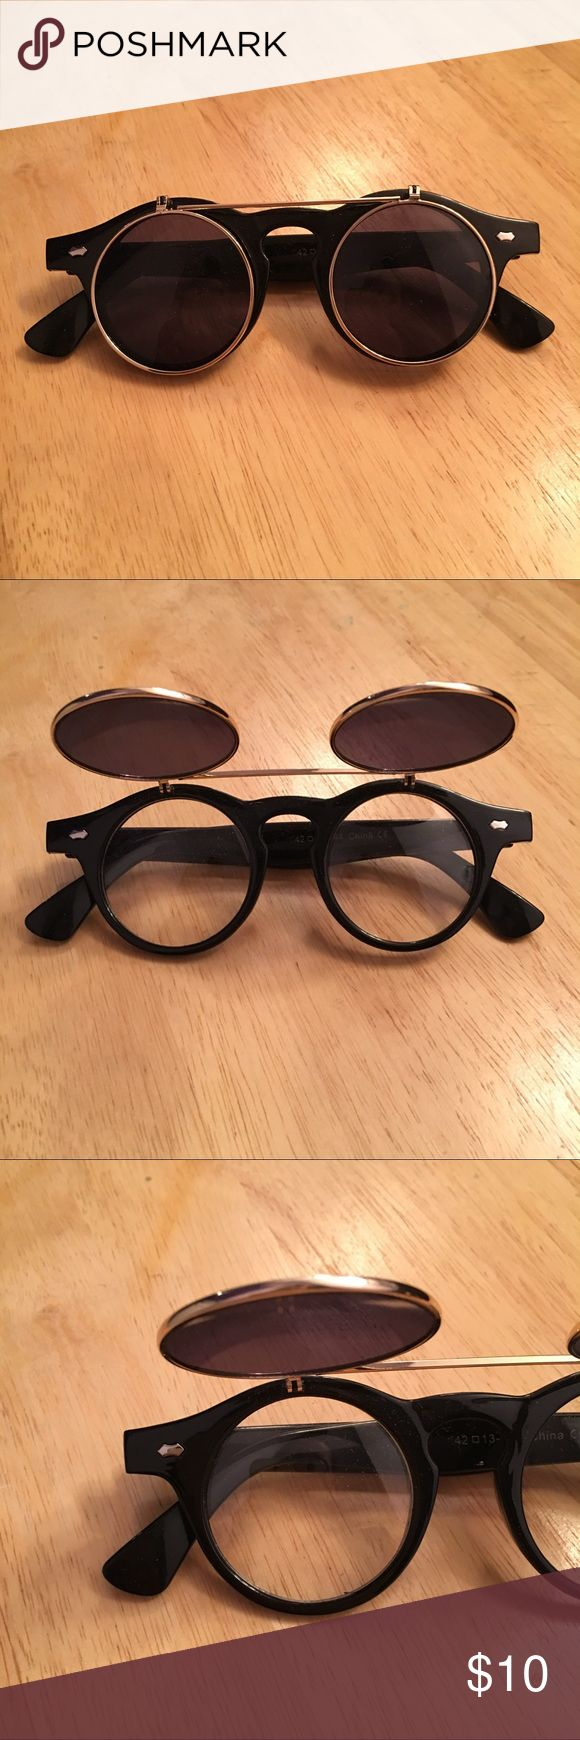 Flip up sunglasses Sunglasses: -Sunglasses part flip up -clear glasses underneath  -Only wore a couple times -perfect condition  -Was an impulse buy, I don't need!!  Any questions, just ask!! 💞💞 ***MAKE AN OFFER!!*** Other Accessories Sunglasses